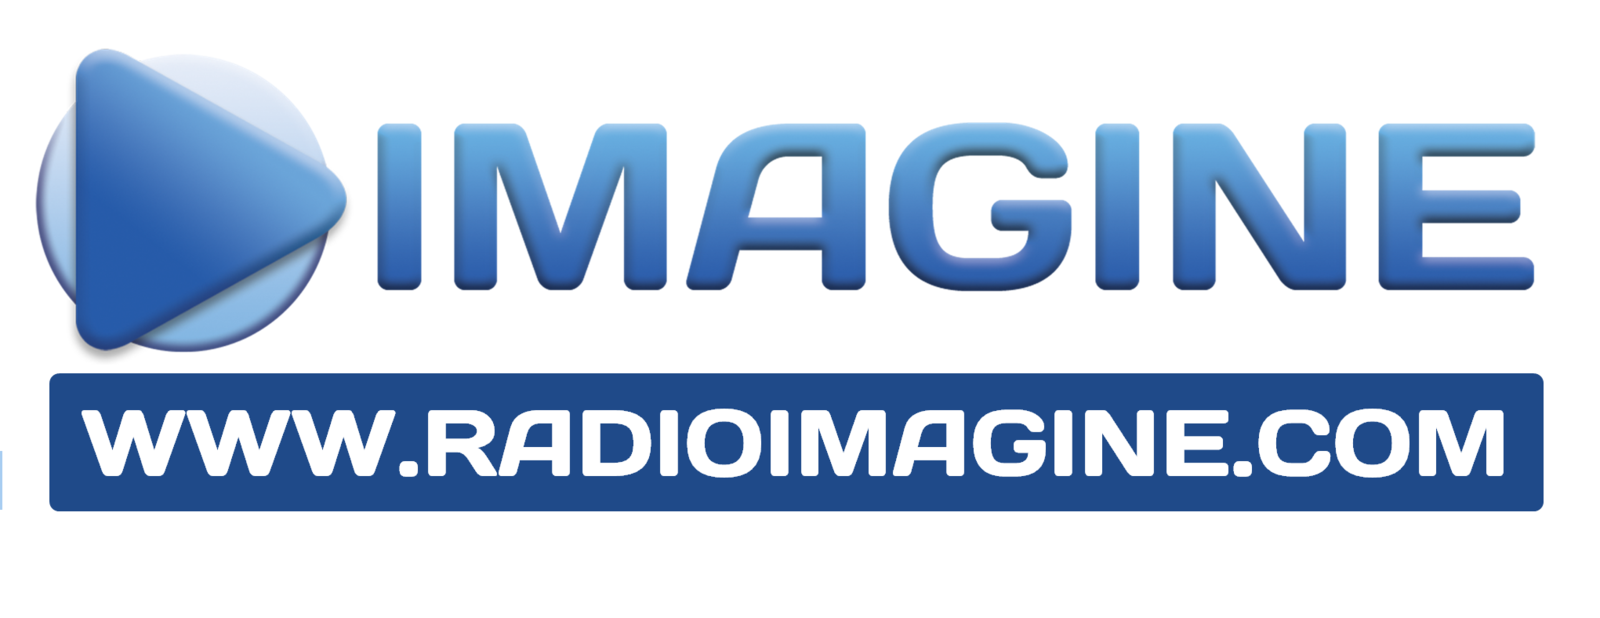 Radio Imagine - Interview Sports : Pierre DUPONT, president du Team Ecrins Hautes-Alpes.